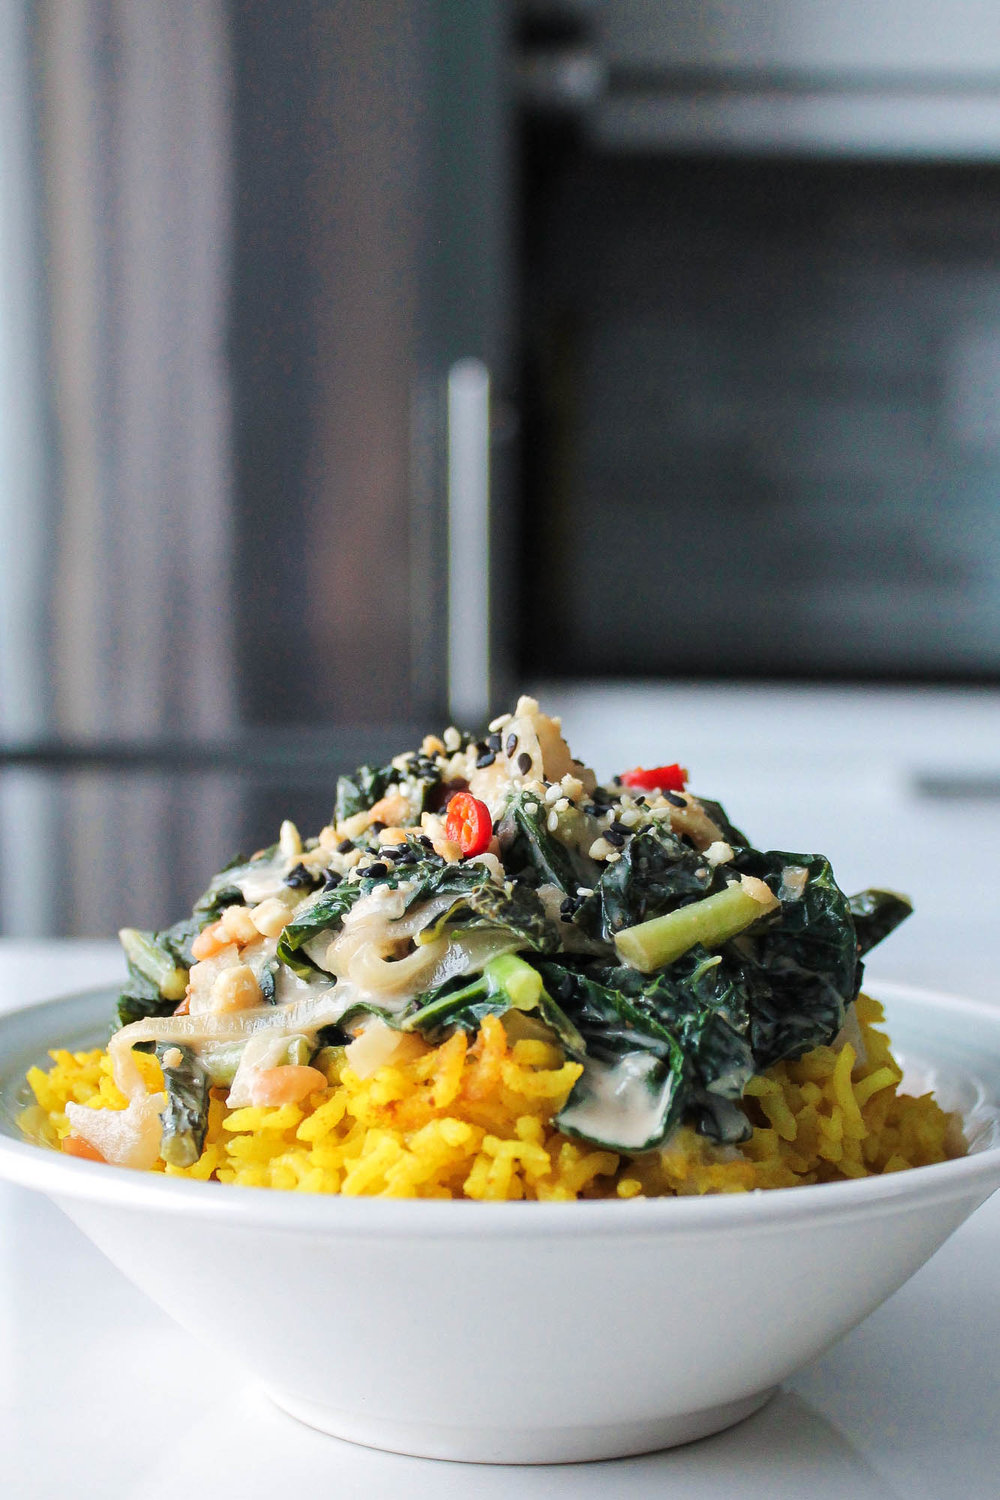 Braised Coconut Milk + Peanut Greens with Ginger Turmeric Rice || This easy + simple recipe for coconut curried kale over turmeric rice is healthy, vegan and takes less than 30 minutes! || creamandhoney.ca